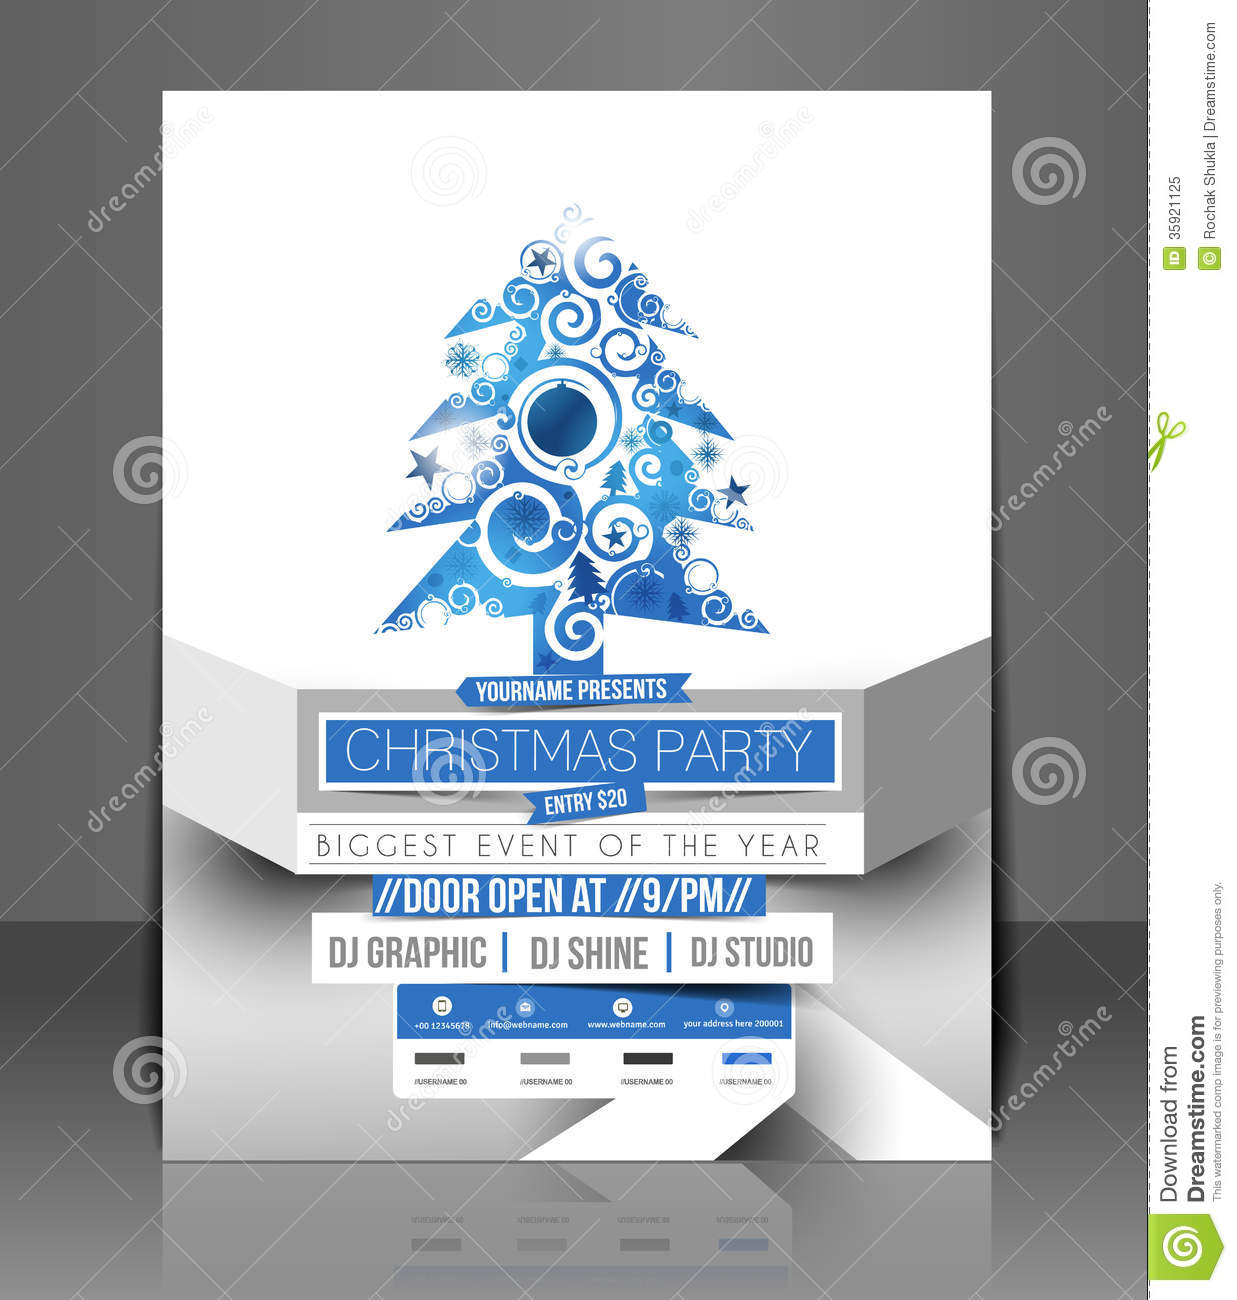 christmas party flyer royalty stock photo image 35921125 christmas party flyer